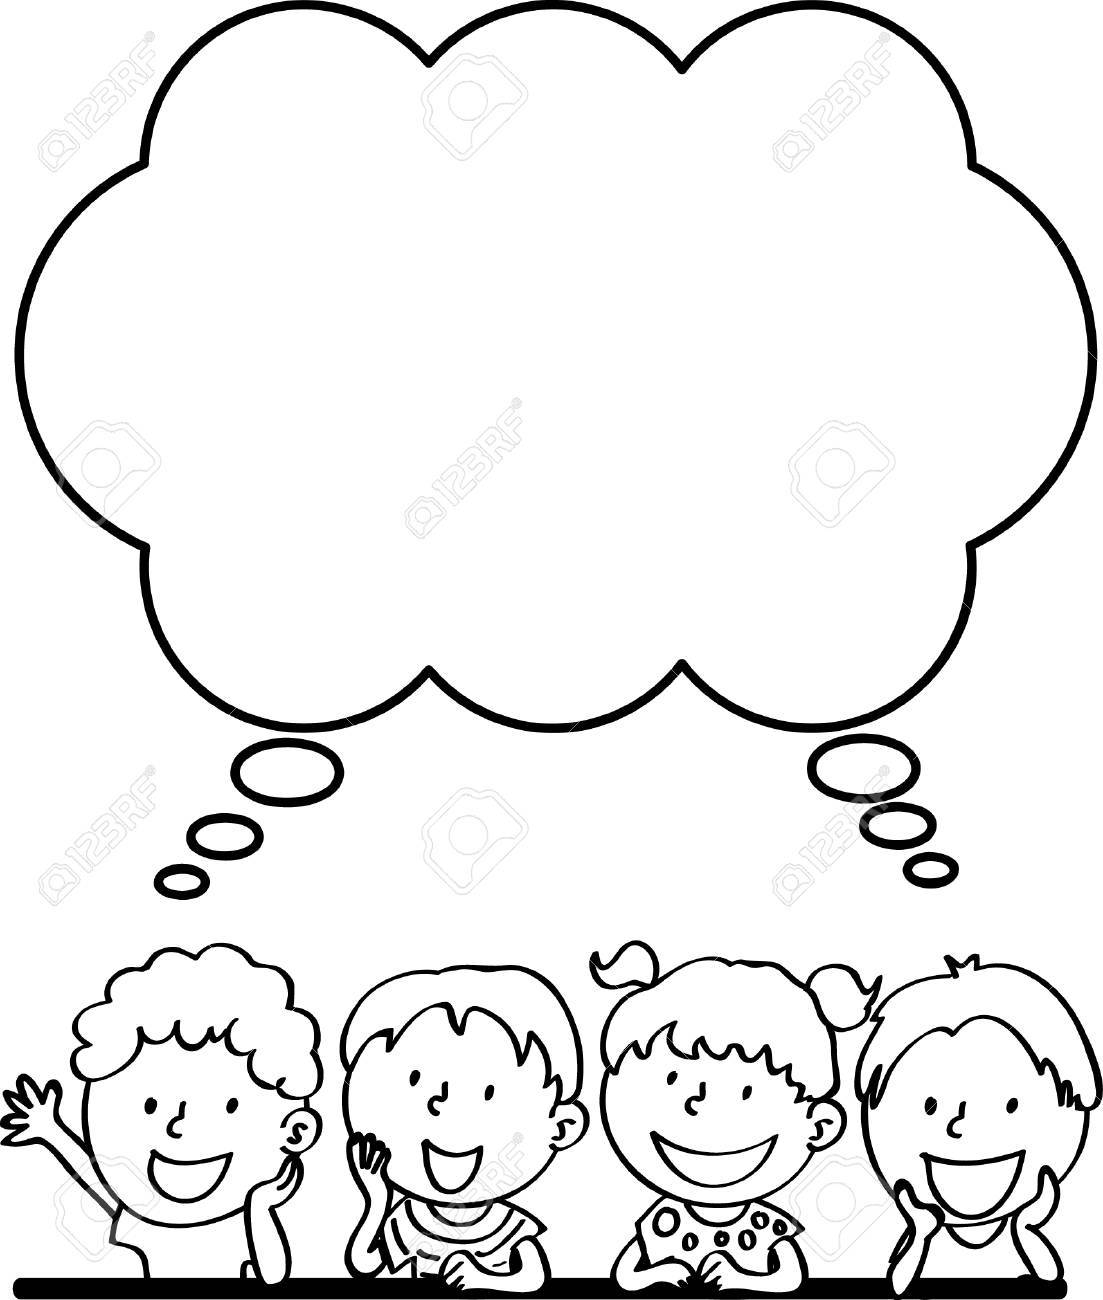 Kid thinking clipart black and white 7 » Clipart Portal.